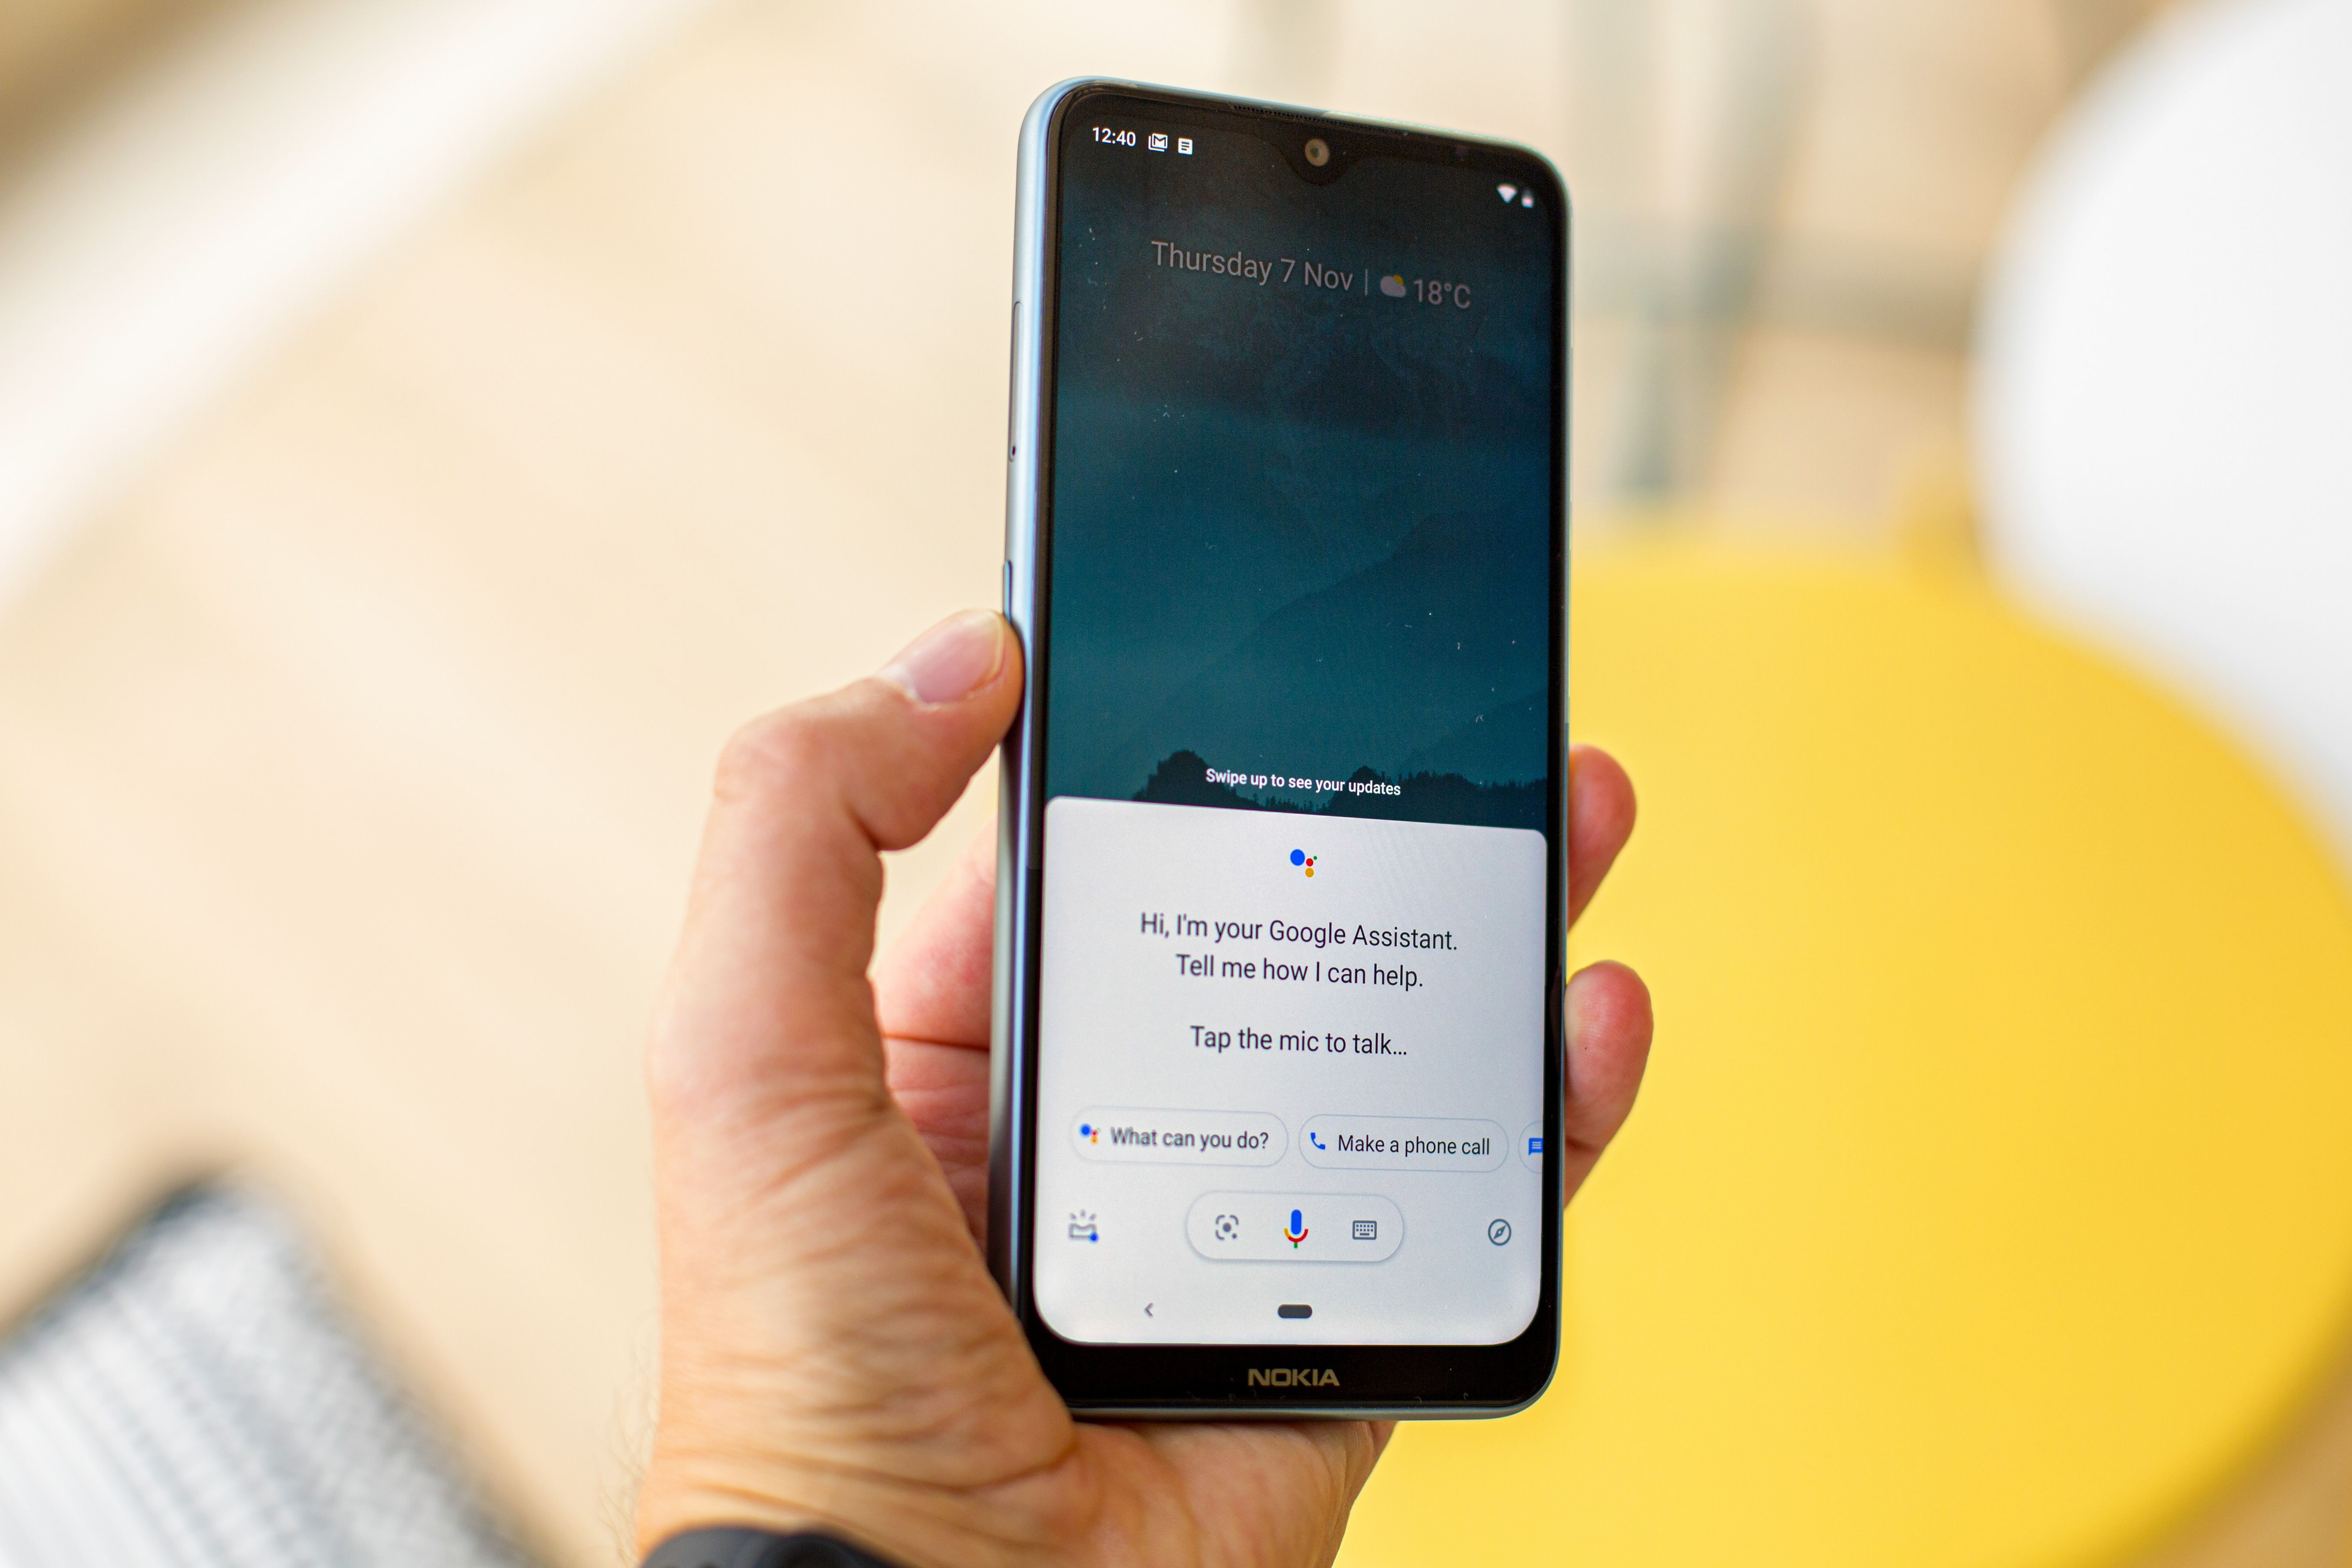 Clean Android One software and a dedicated Google Assistant button